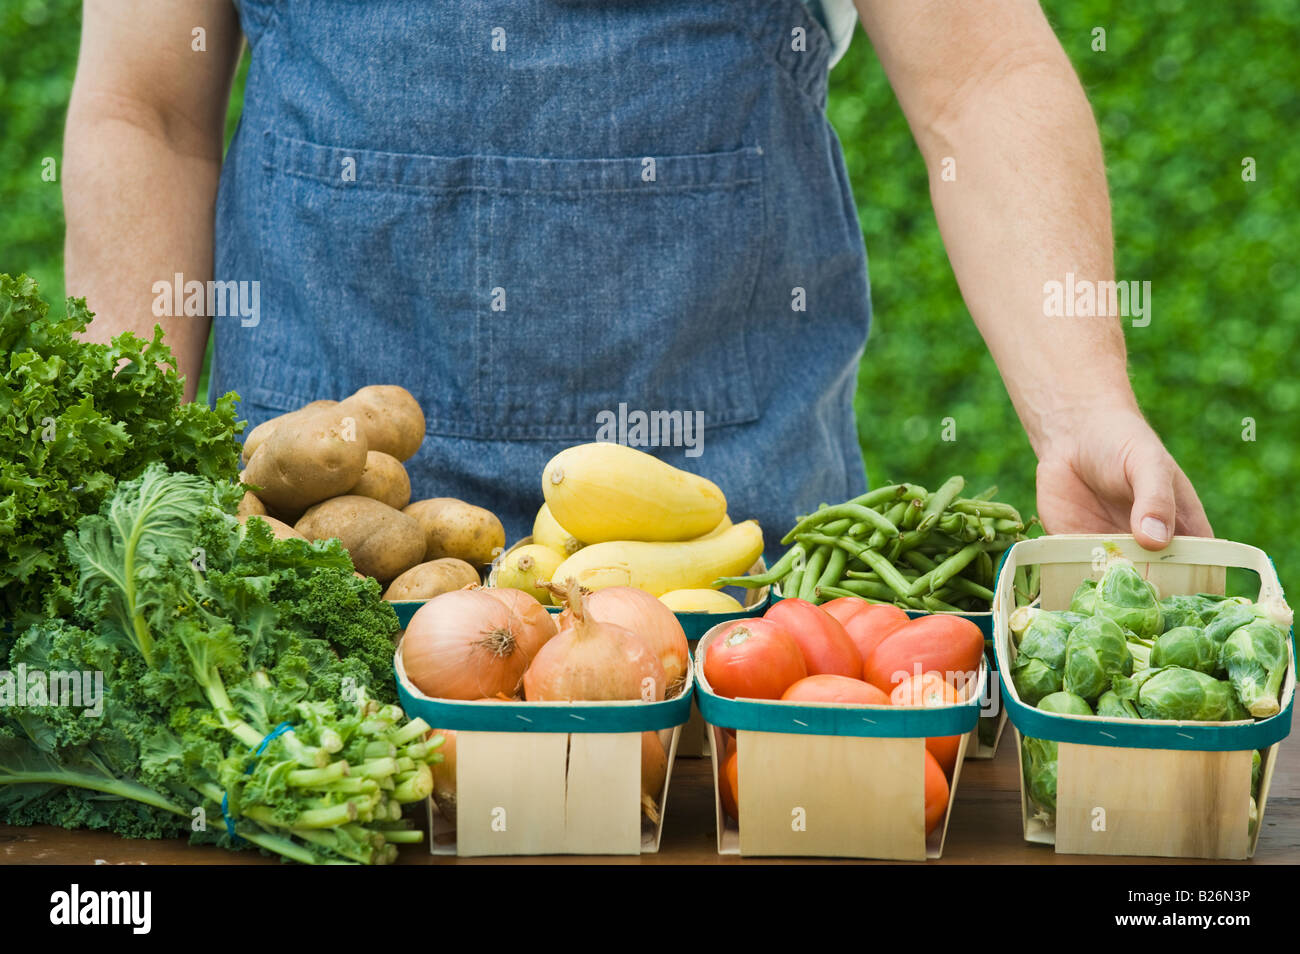 Farmer next to baskets of vegetables - Stock Image